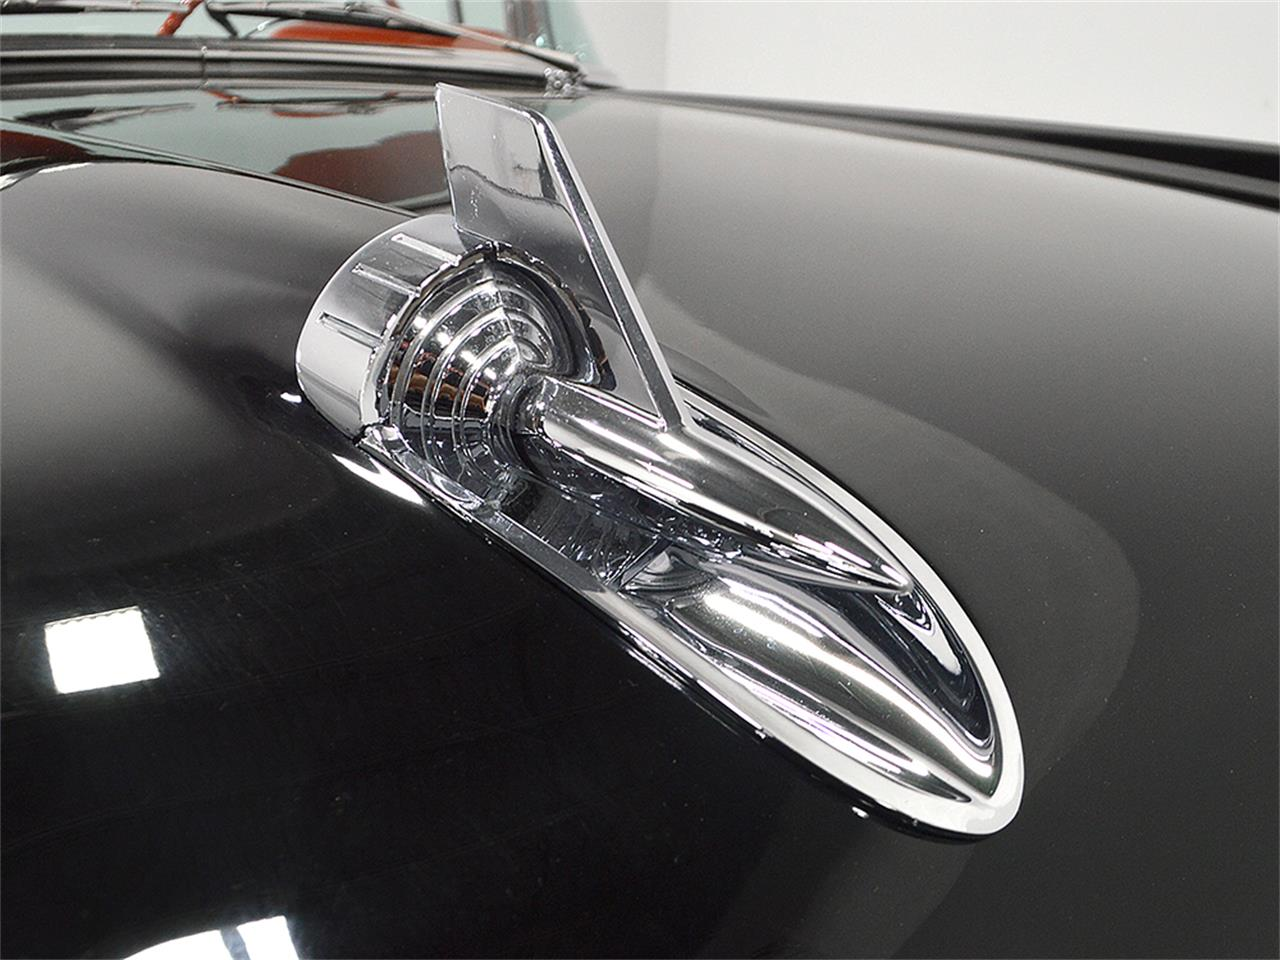 Large Picture of Classic '57 Chevrolet Bel Air located in Ohio - $74,900.00 Offered by Harwood Motors, LTD. - M6IV